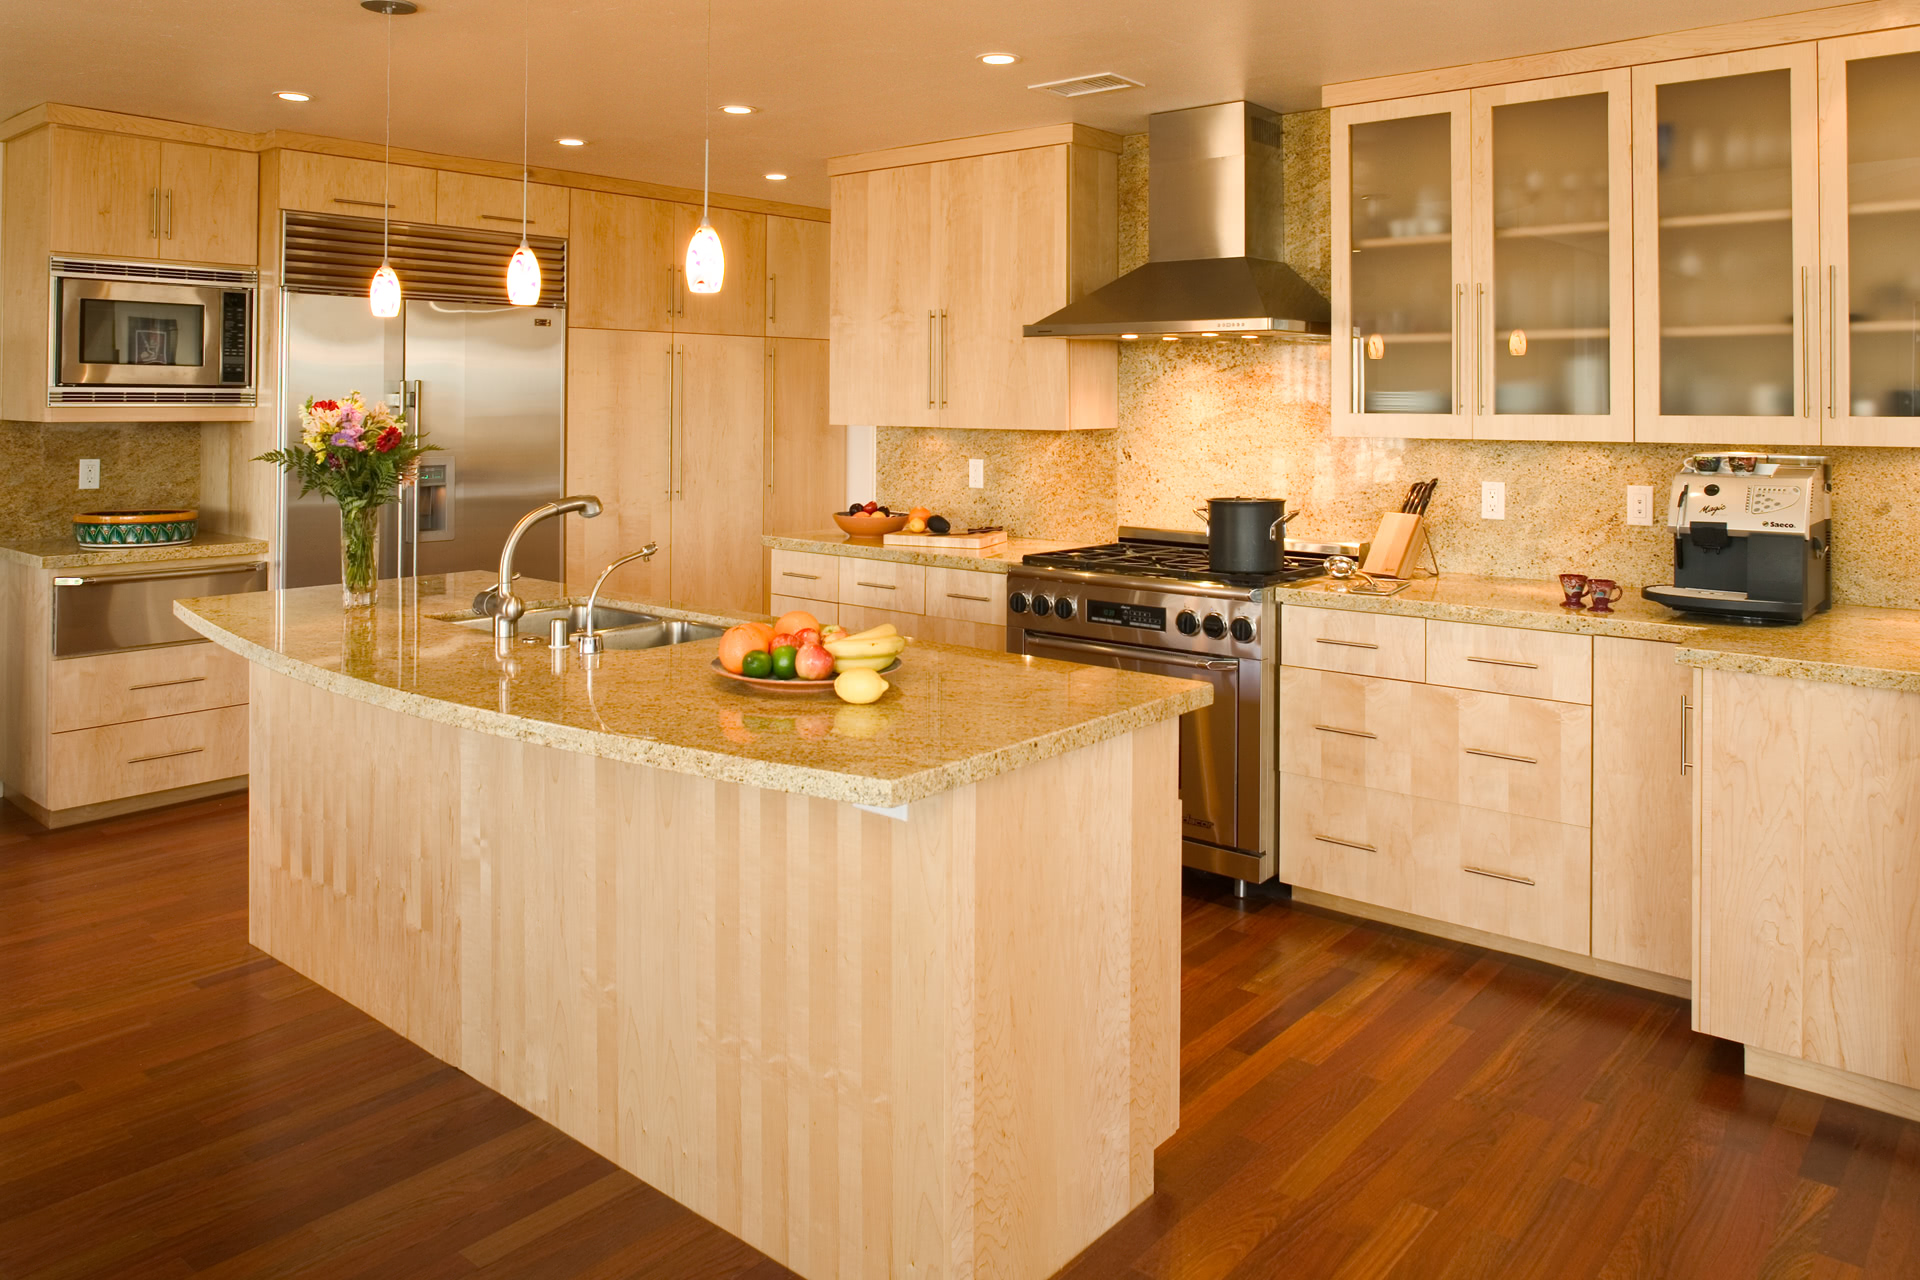 kitchen cabinets gallery custom cabinets in san diego kitchens bathroom vanities 2998